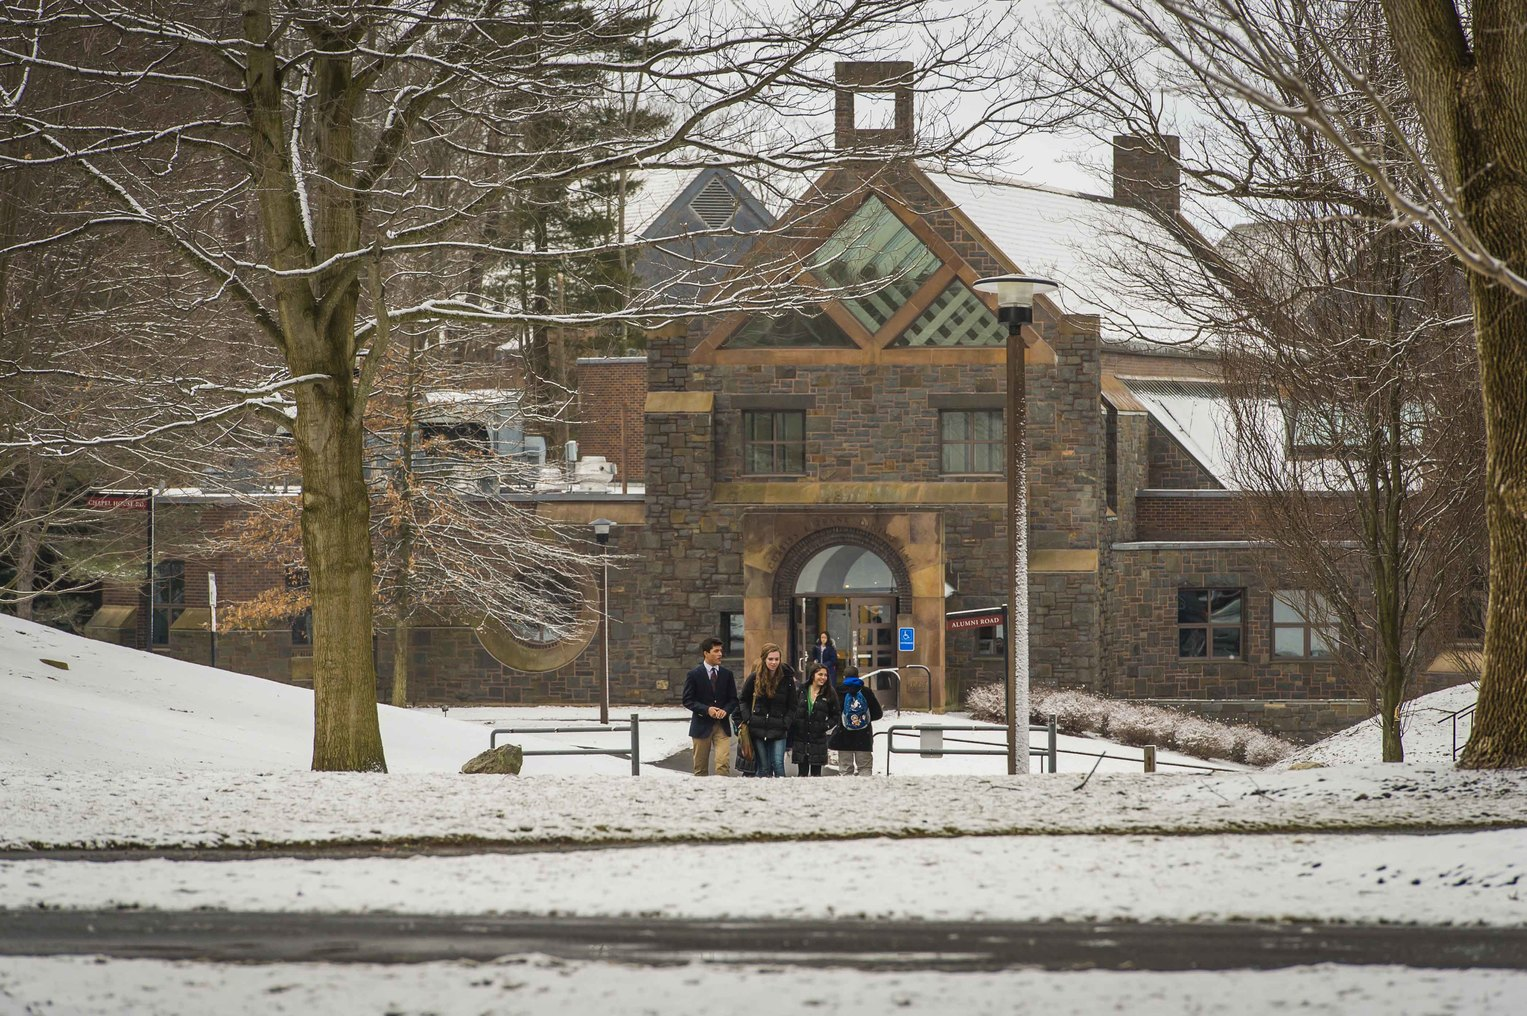 Curtiss E. Frank Dining Hall outside view with snow on trees